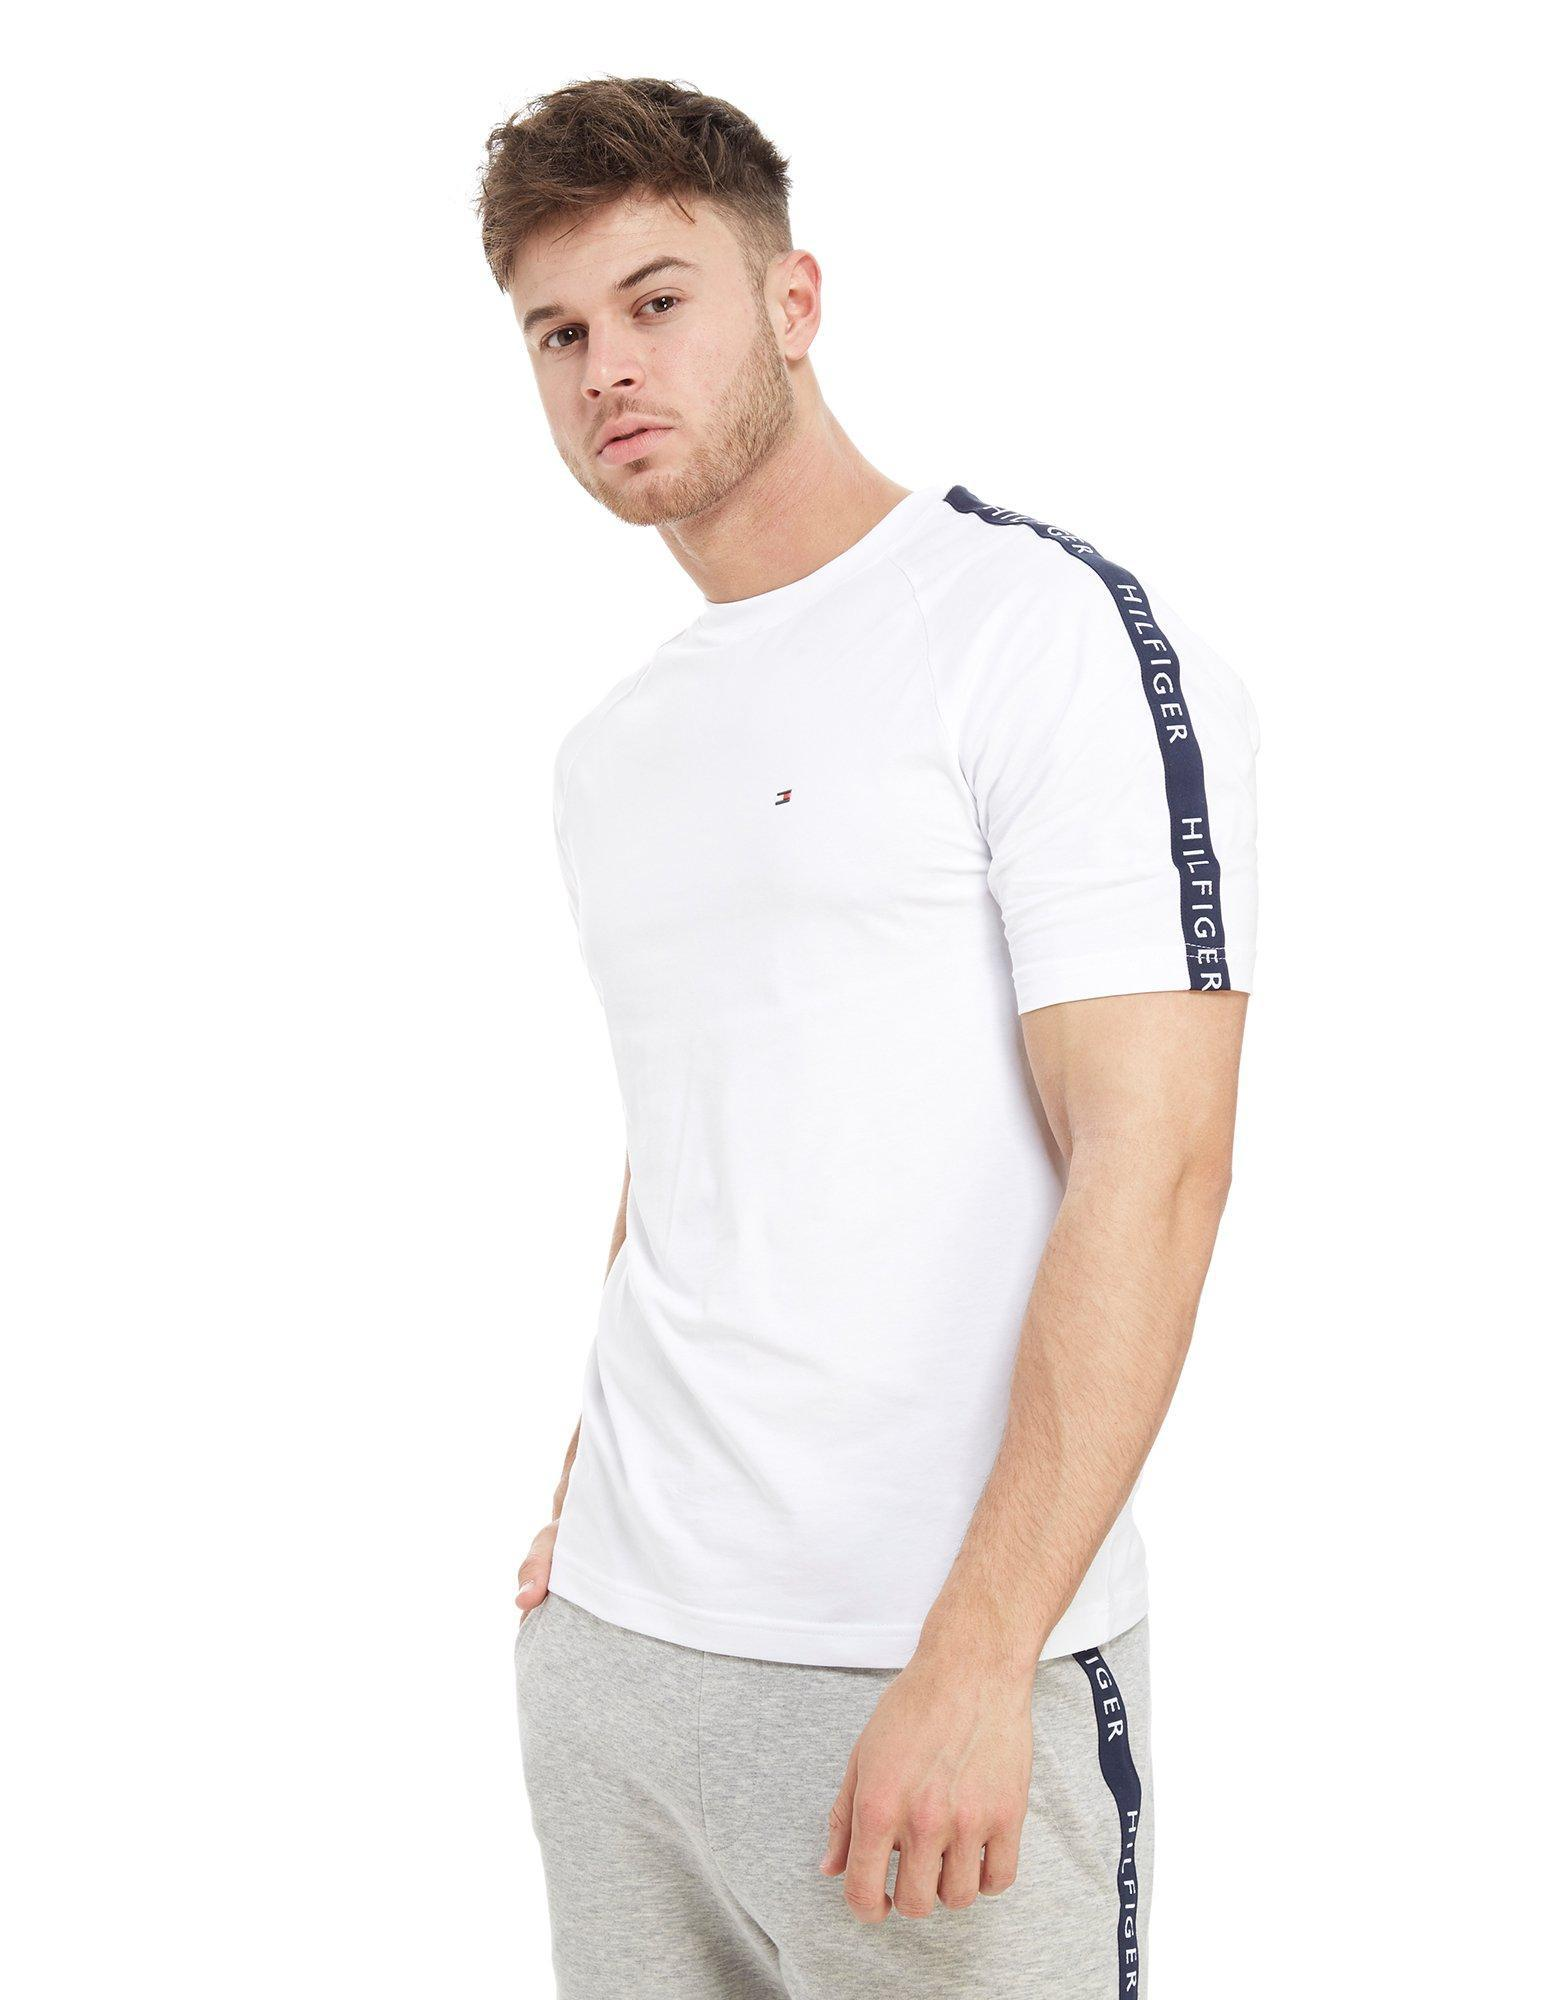 Lyst - Tommy Hilfiger Side Tape T-shirt in White for Men 7c71626adf